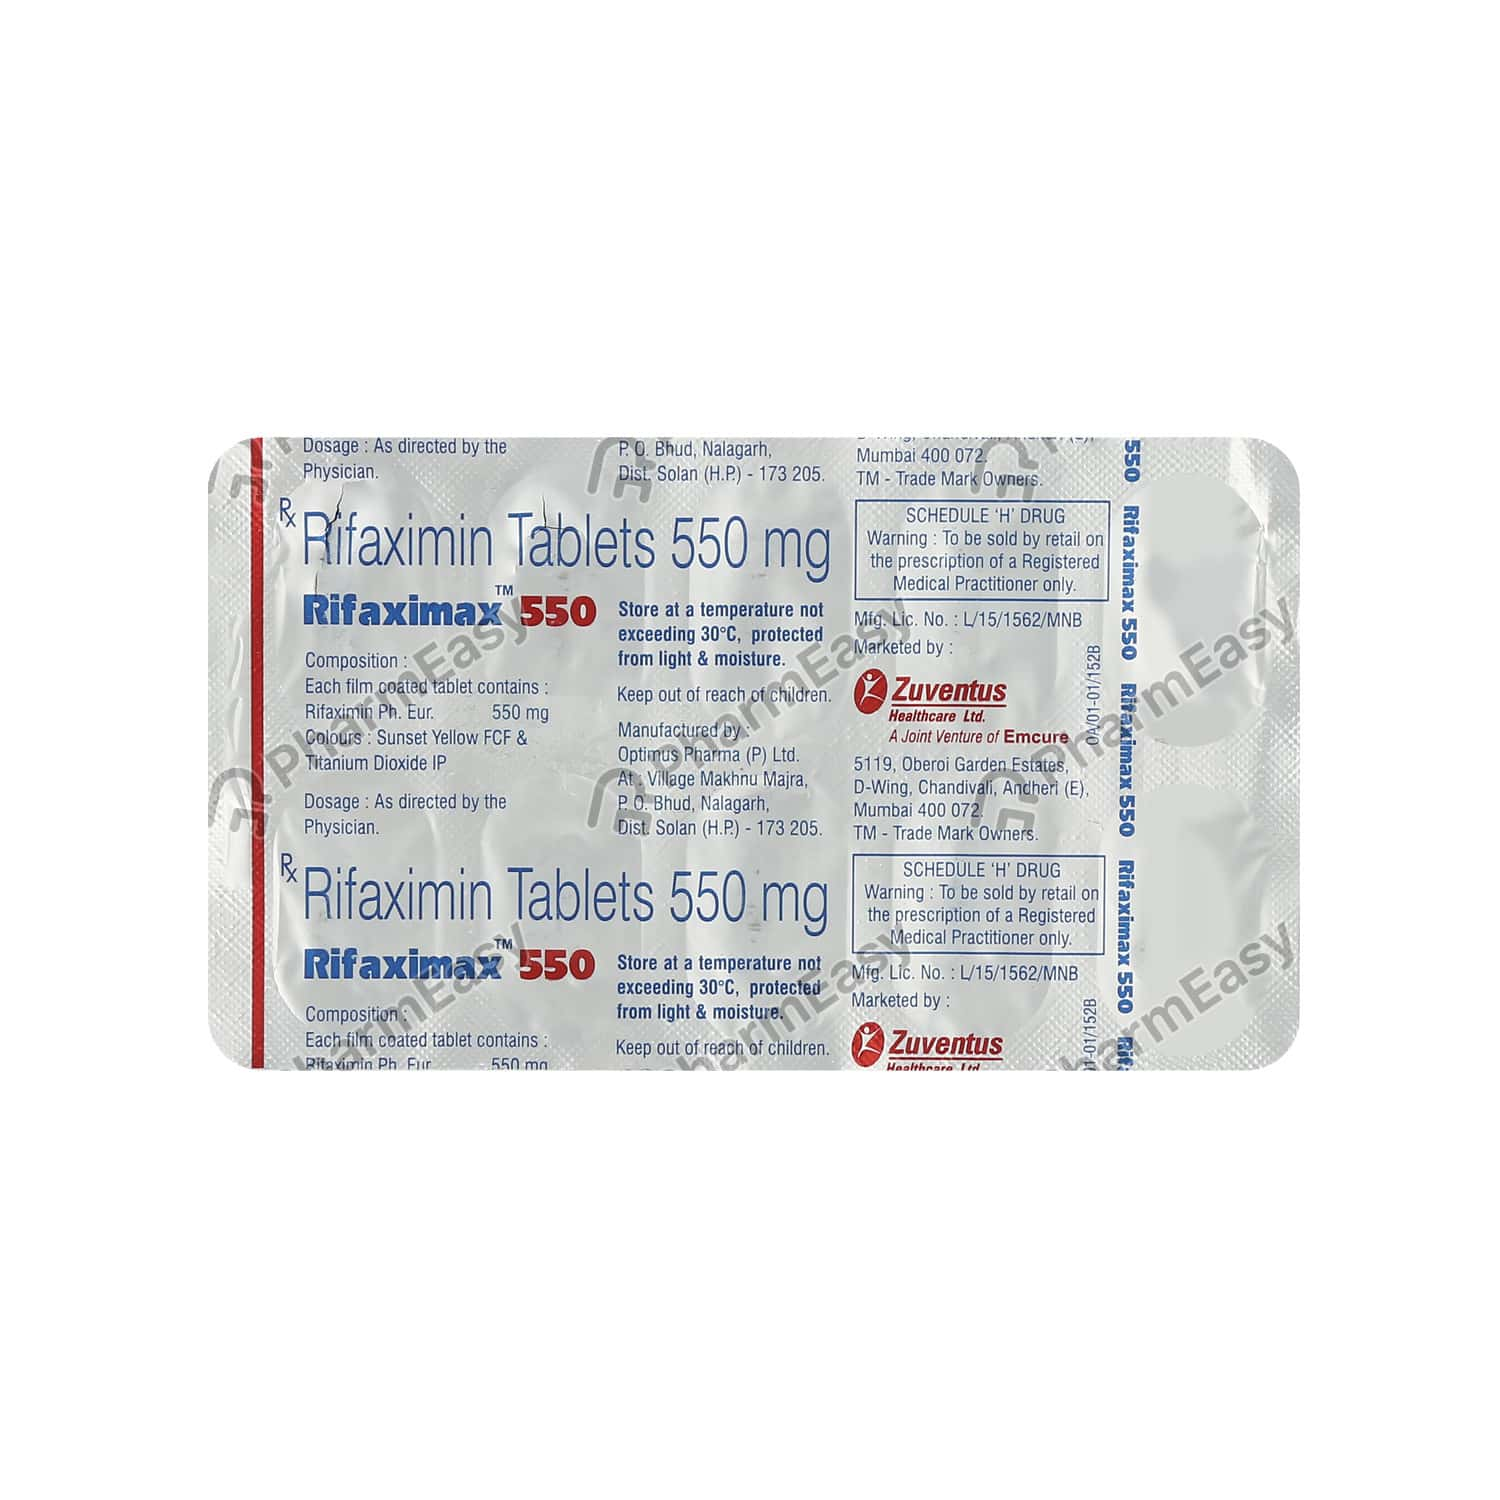 Rifaximax 550mg Tablet